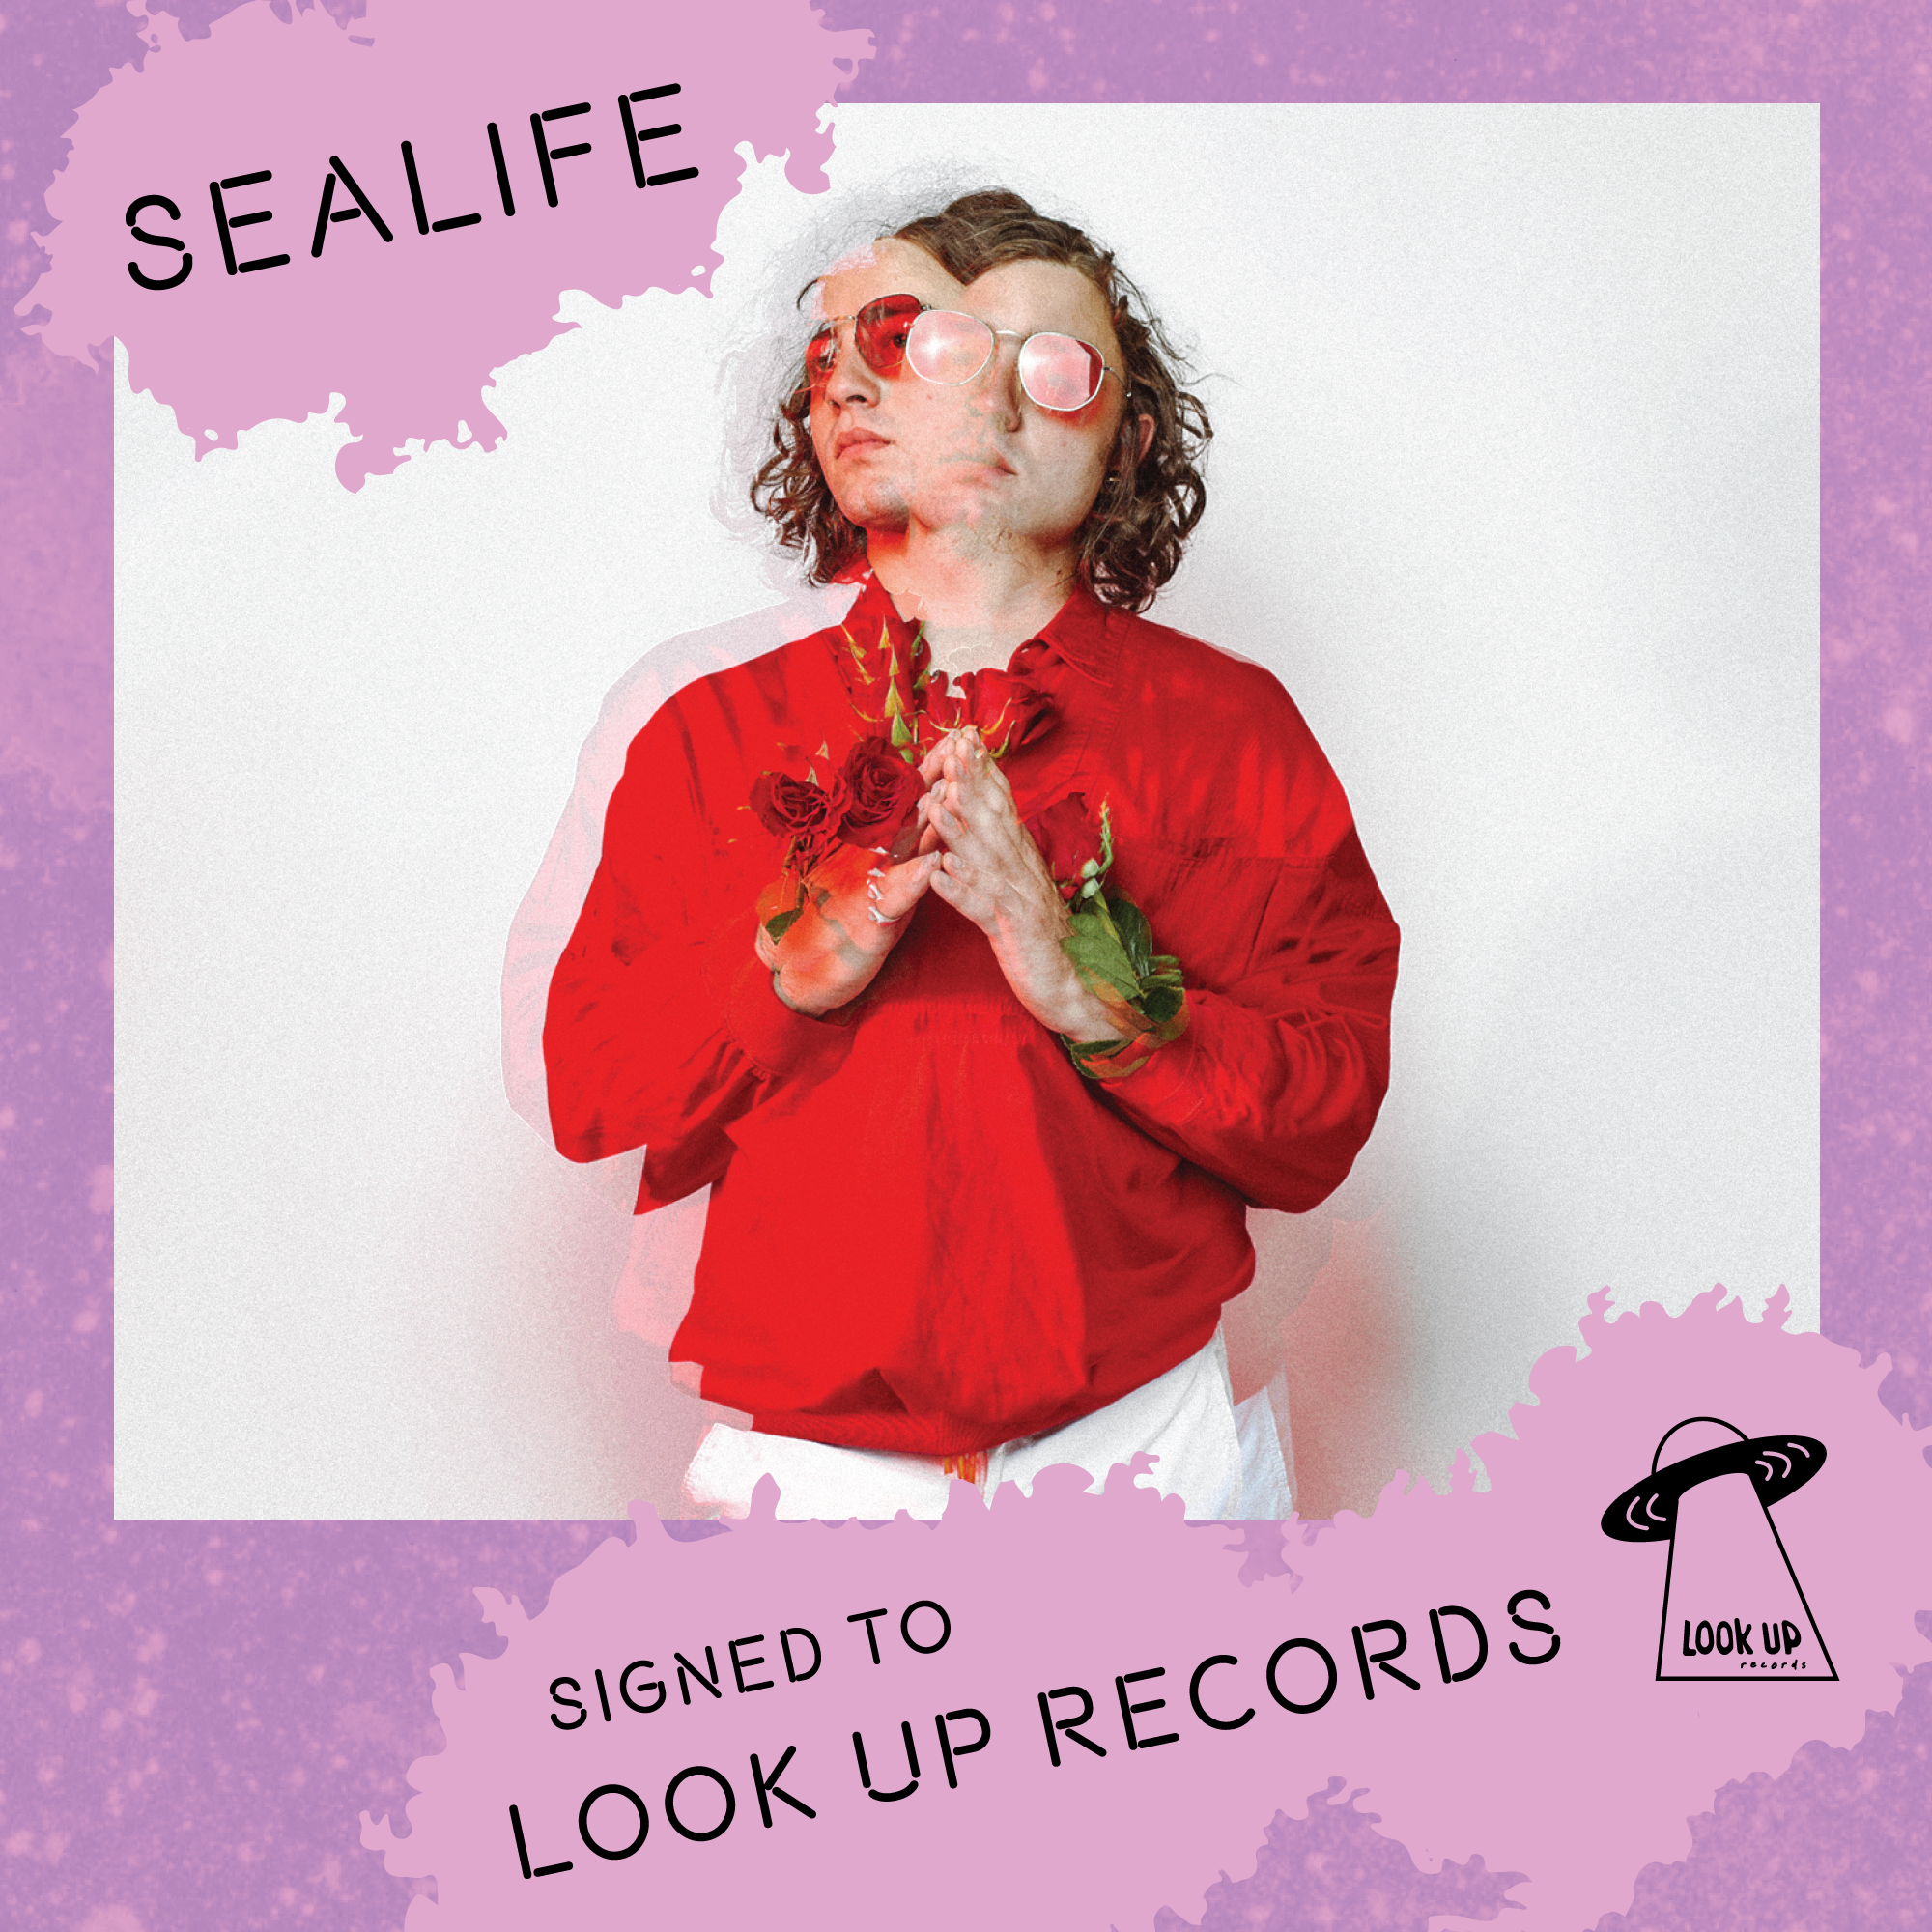 sealife announcement.png